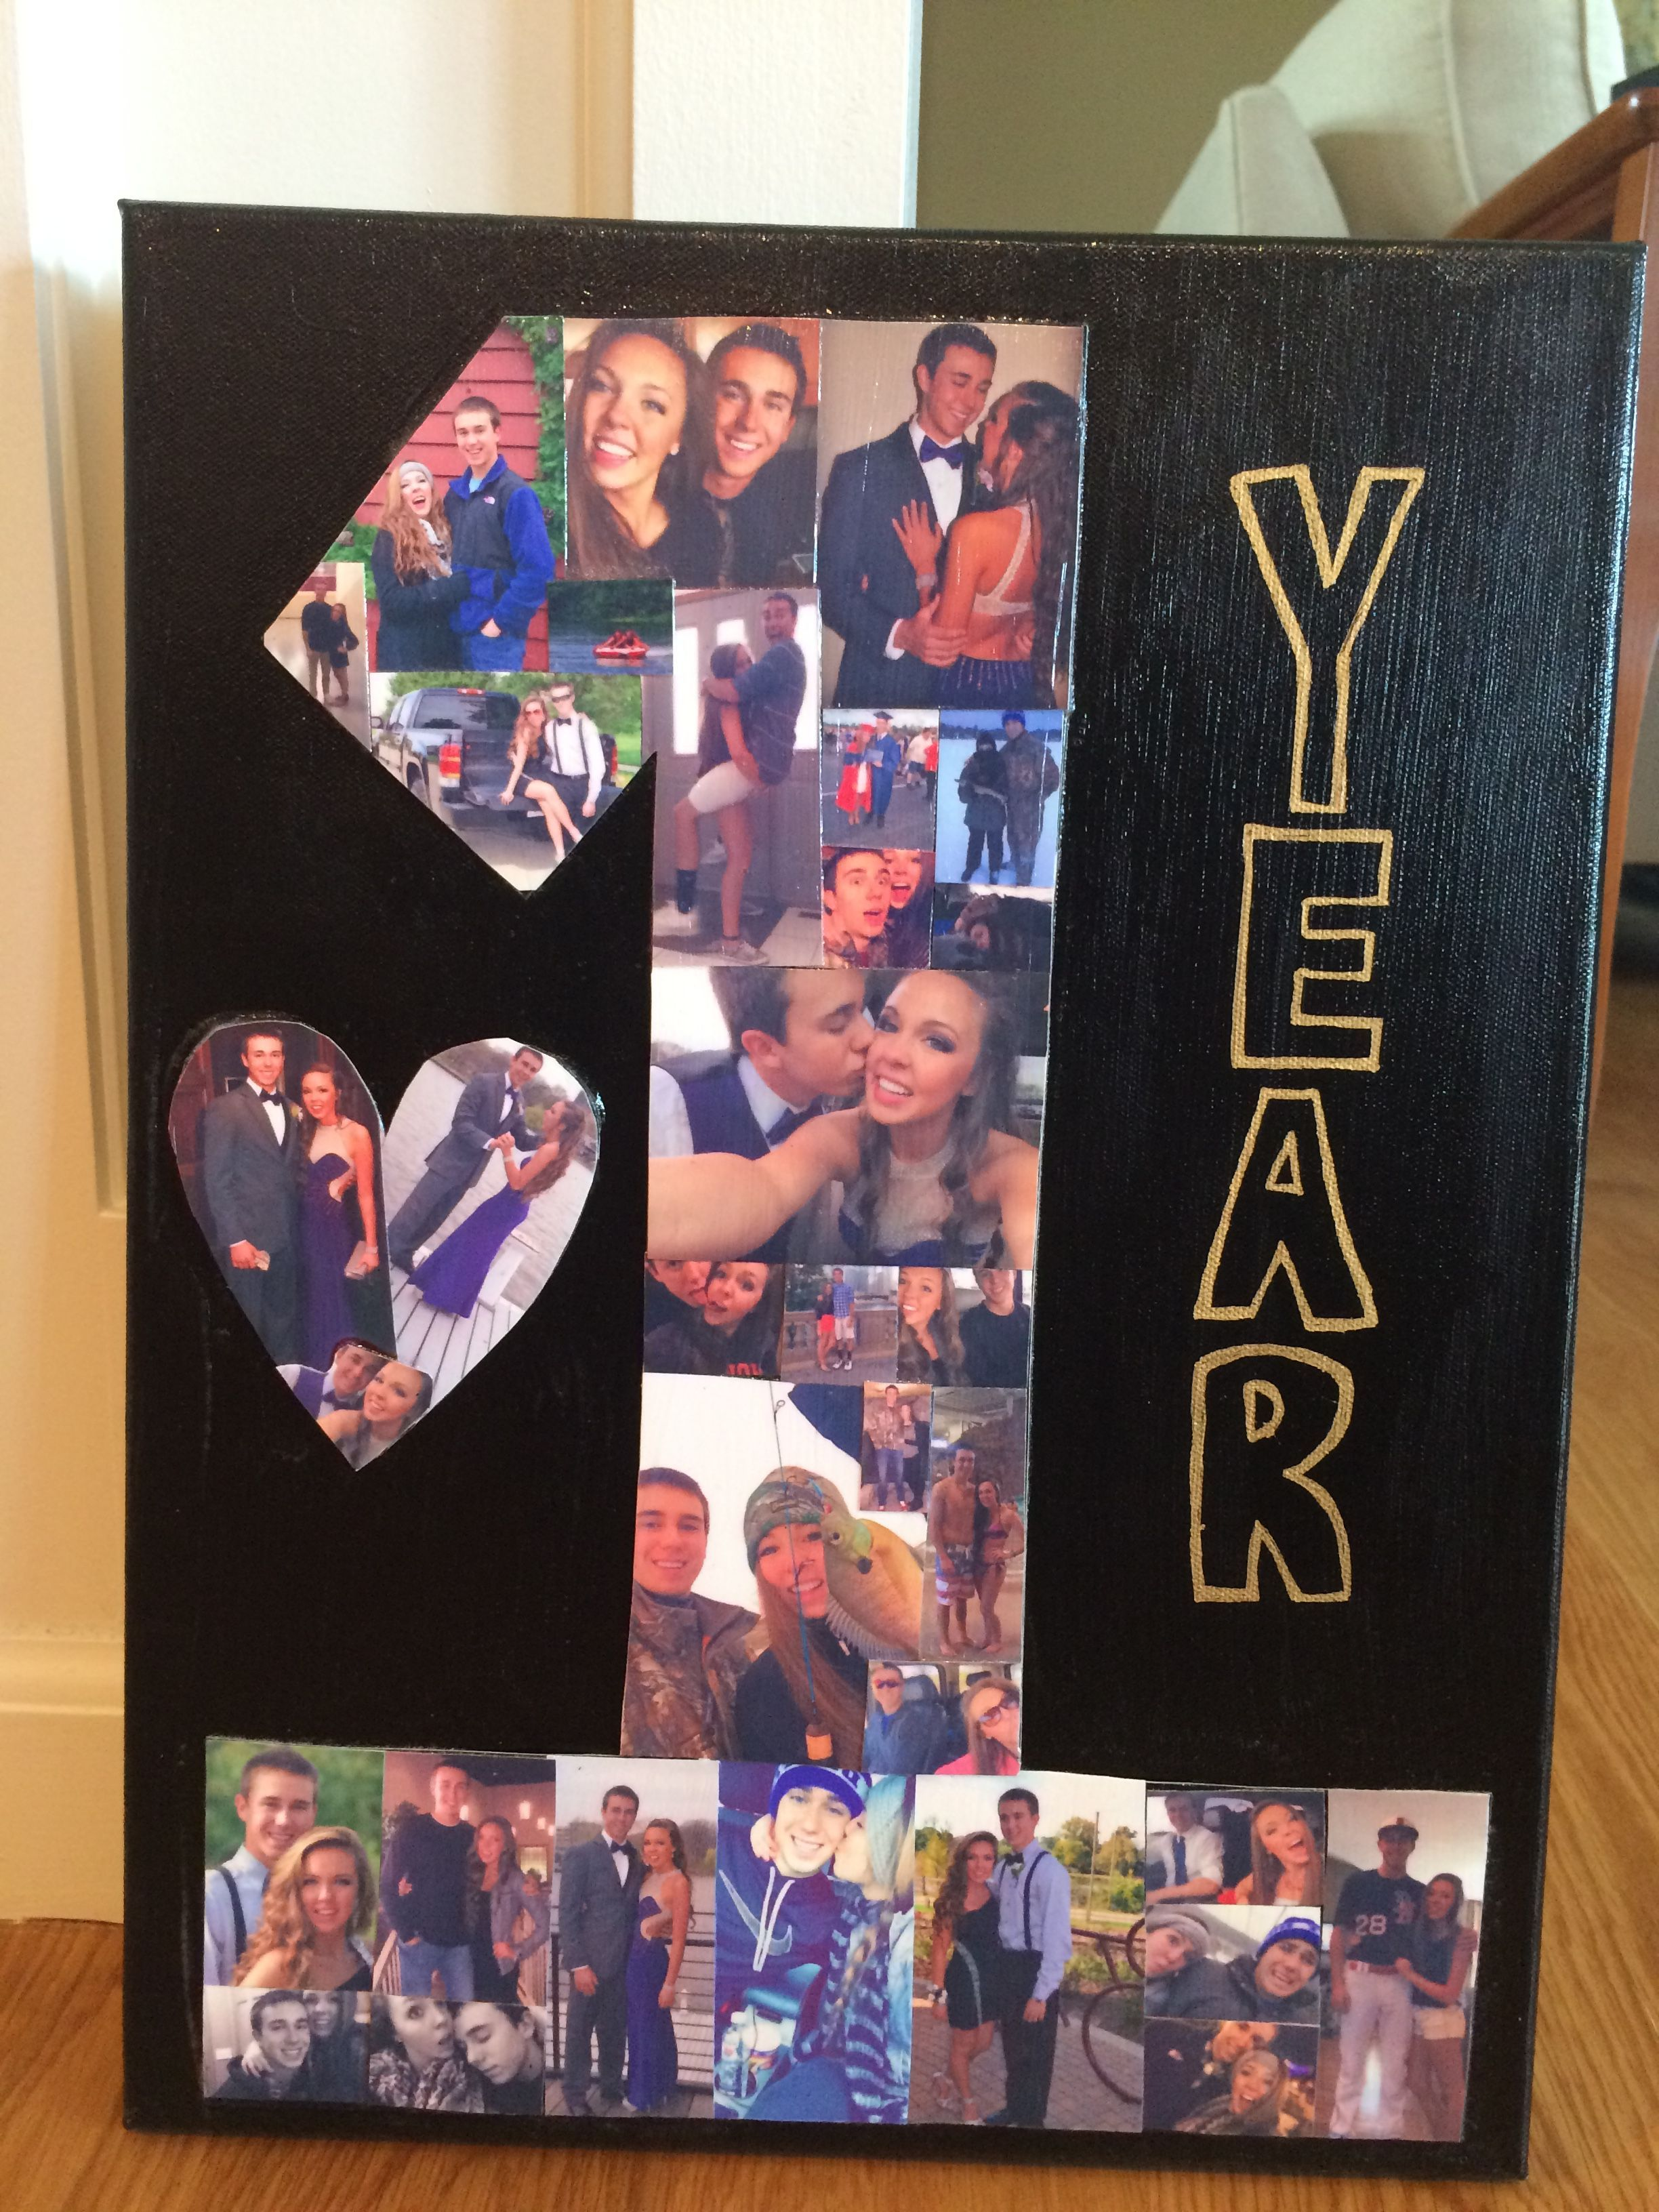 My daughter made this for her boyfriend for their 1 year of dating